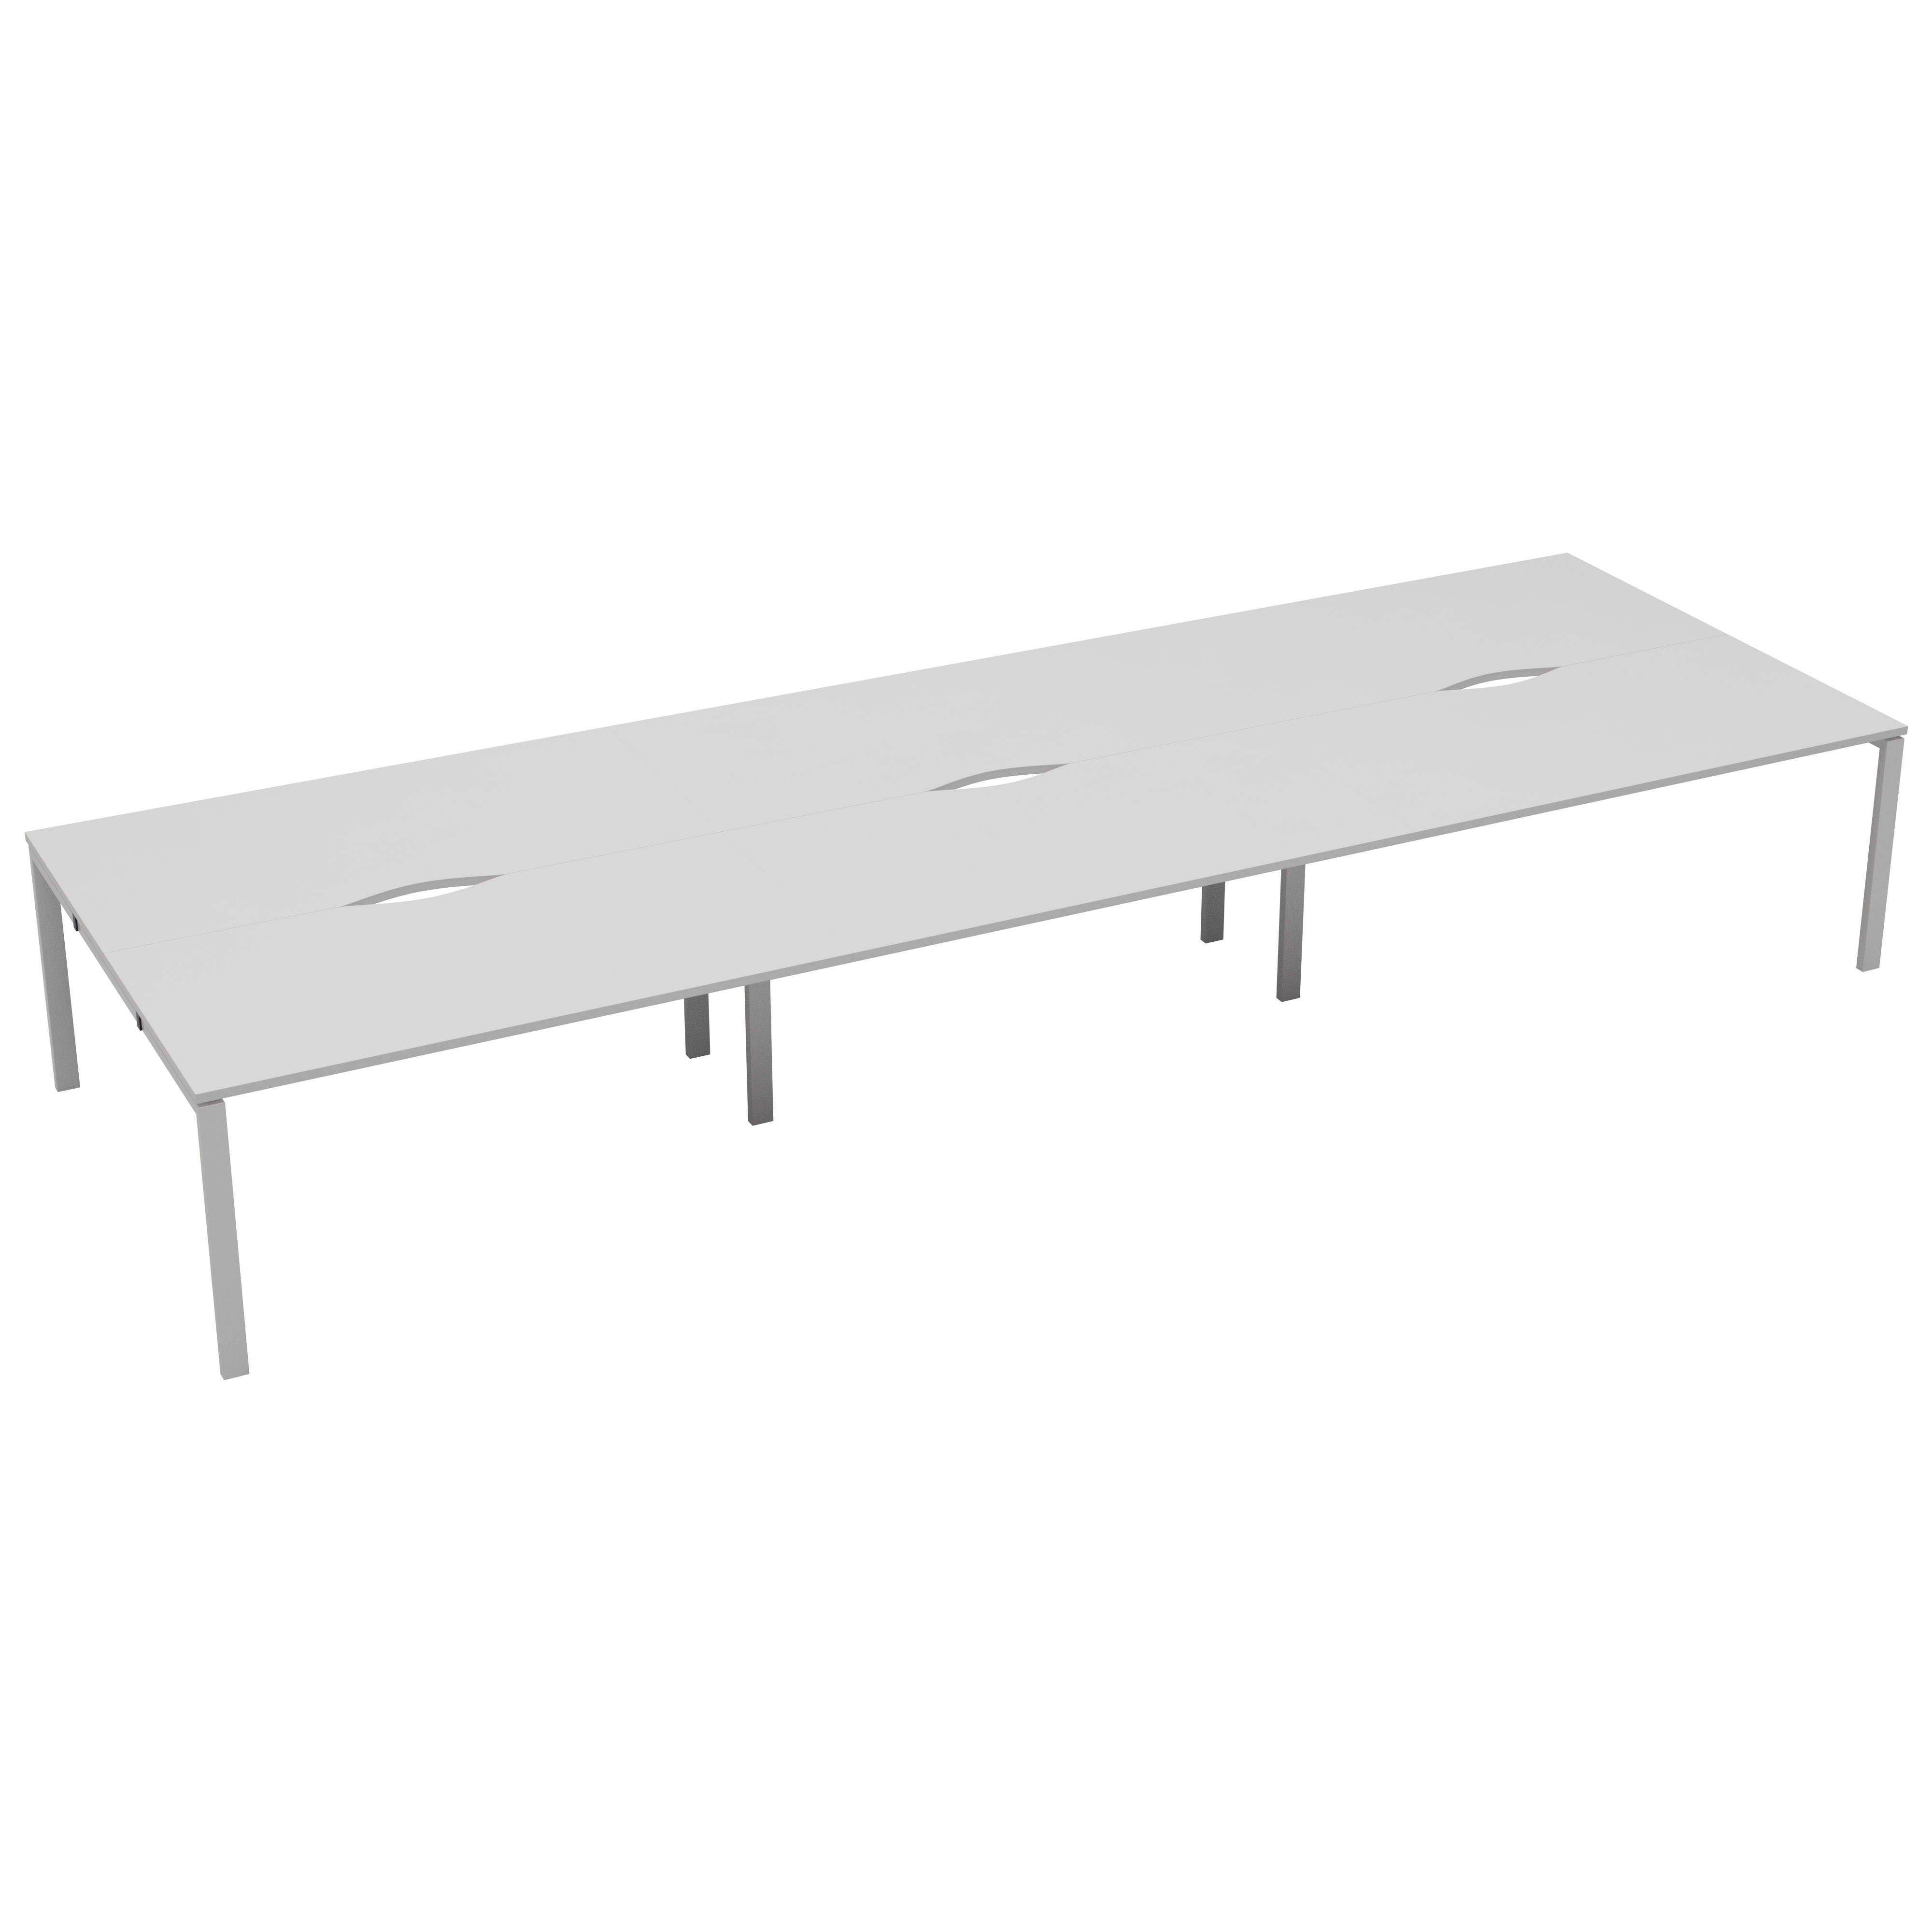 6 Person Bench 1200 x 800 - Pod of 6 Desks - White Top and White Legs